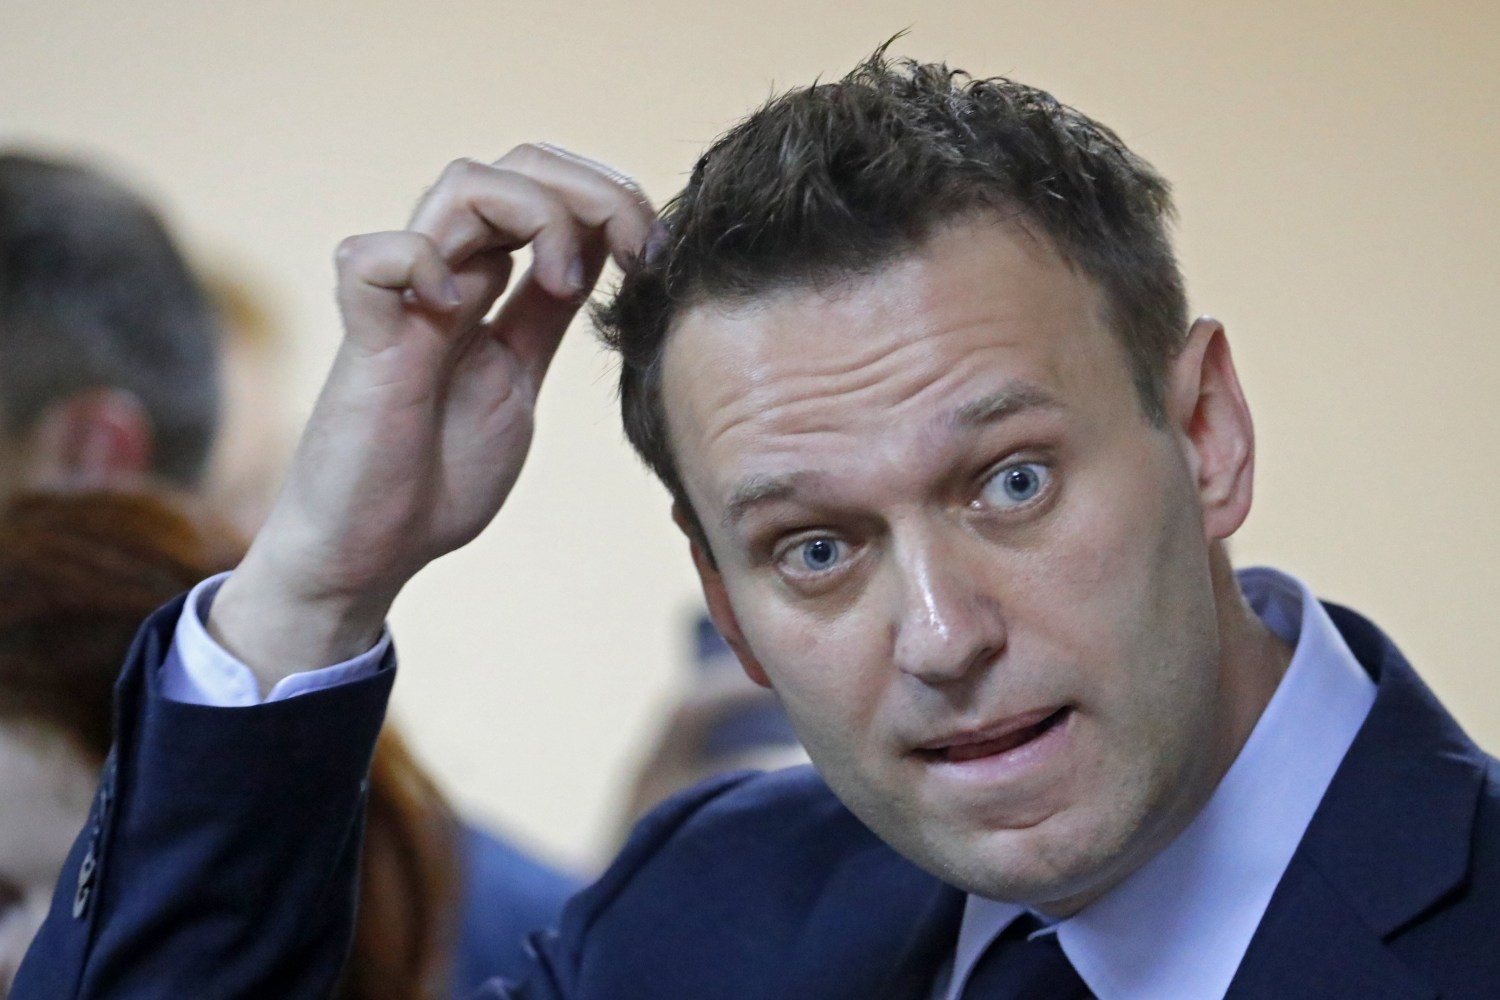 Putin critic Navalny detained by police, his wife says